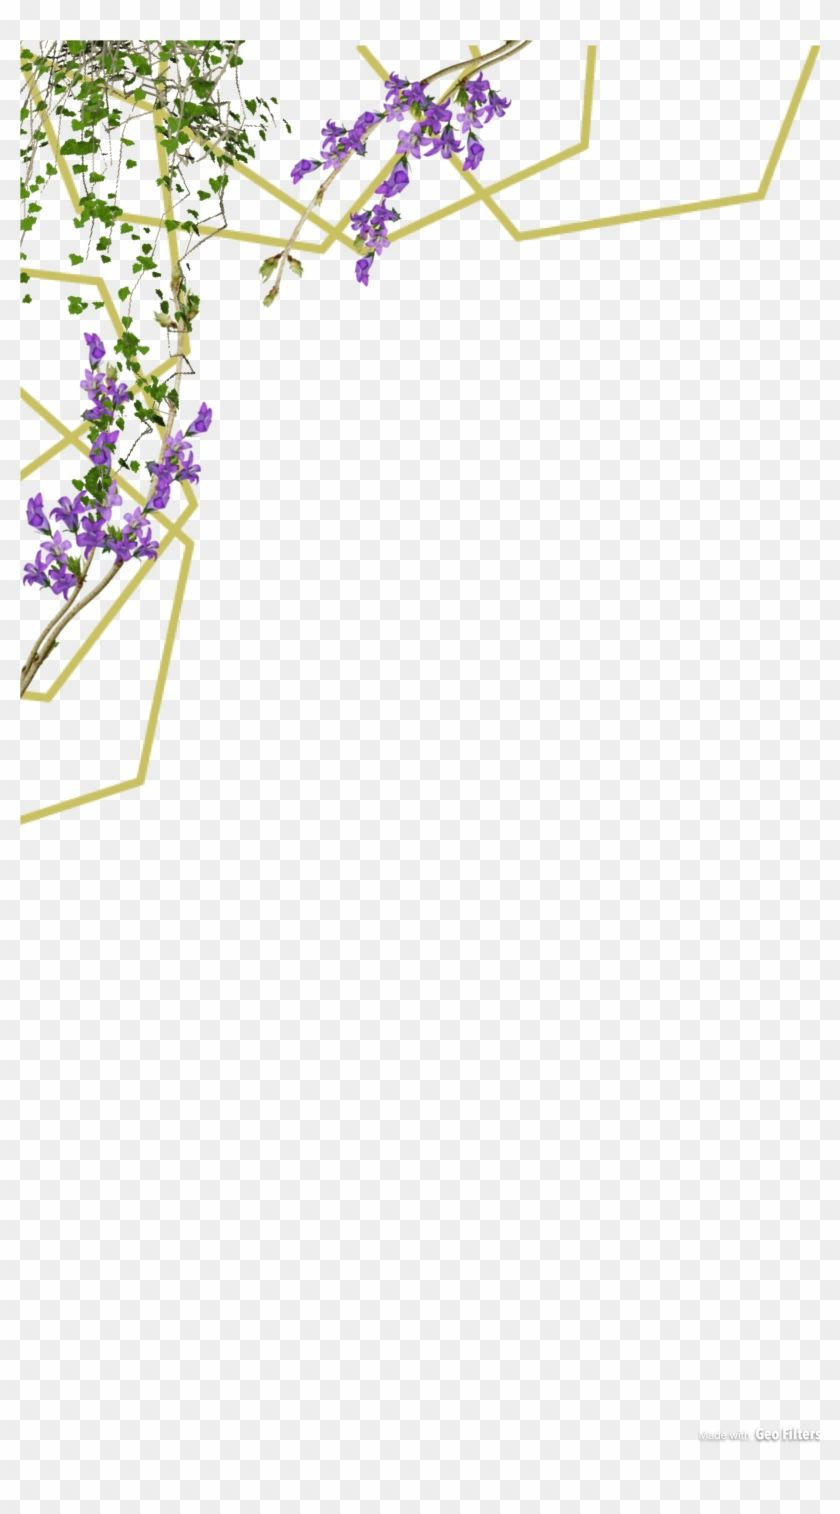 Find Hd سكرابز فلاتر سناب جاهزه Png Transparent Png To Search And Download More Free Transparent Png Images Flower Frame Floral Logo Wedding Cards Images